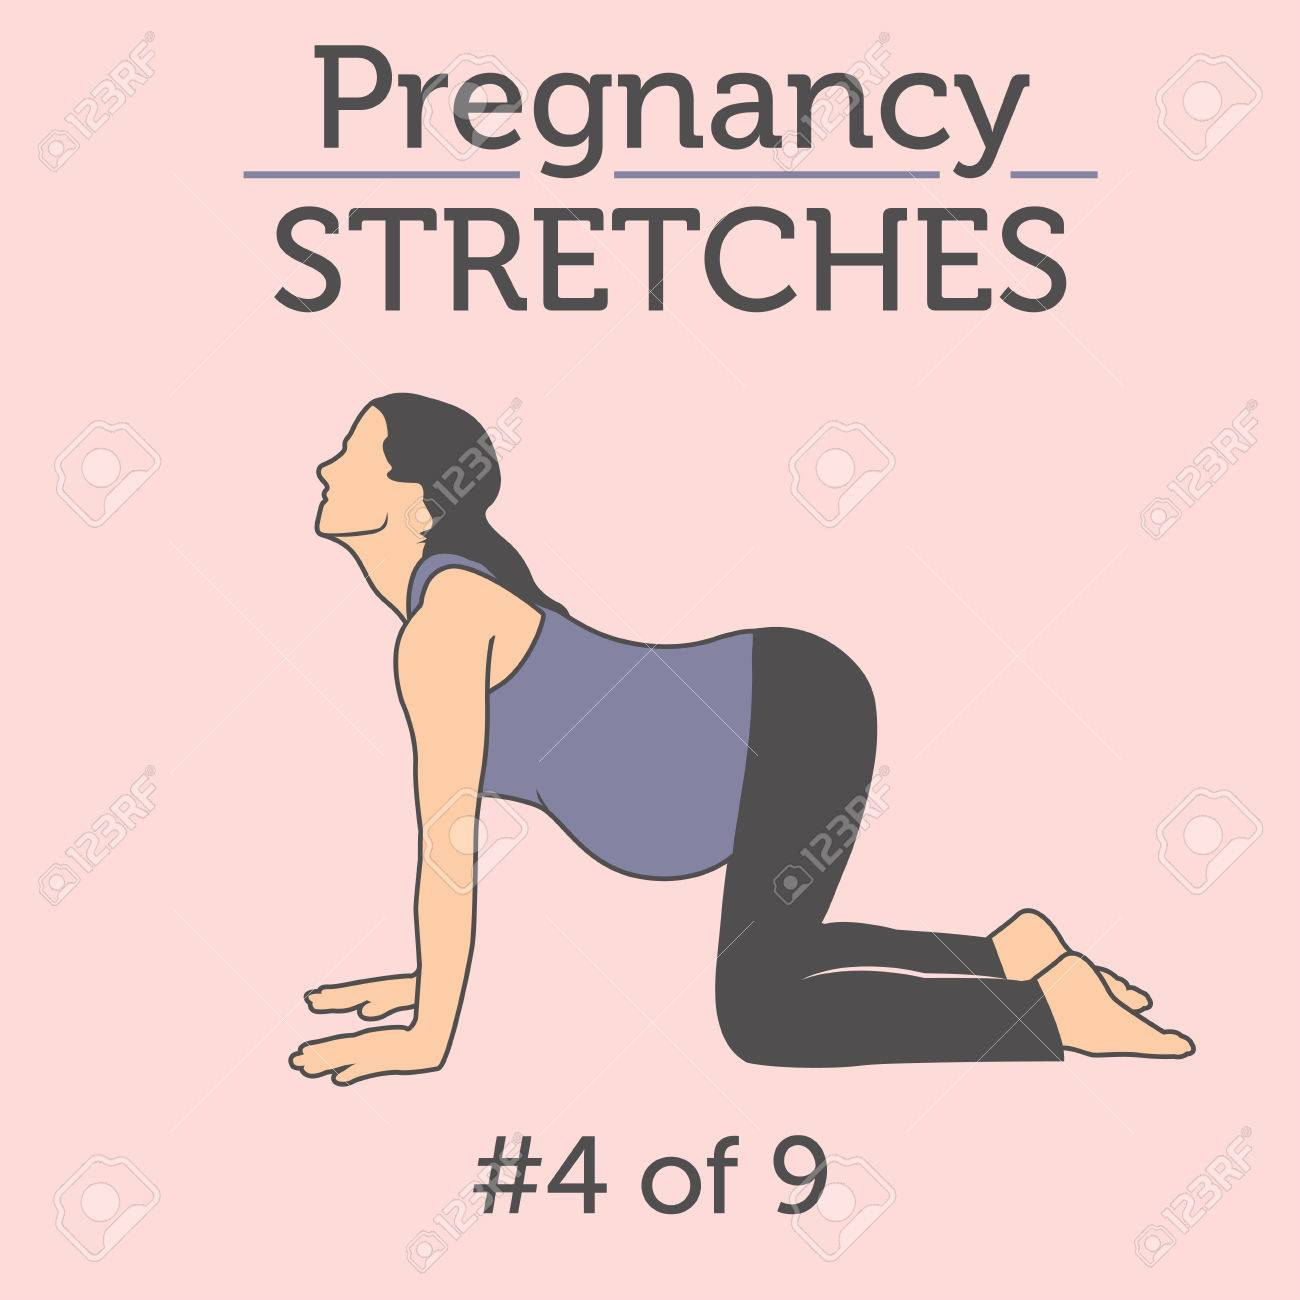 Pregnant Woman In The Expecting Stages Of Birth Stretching Or Royalty Free Cliparts Vectors And Stock Illustration Image 54669674